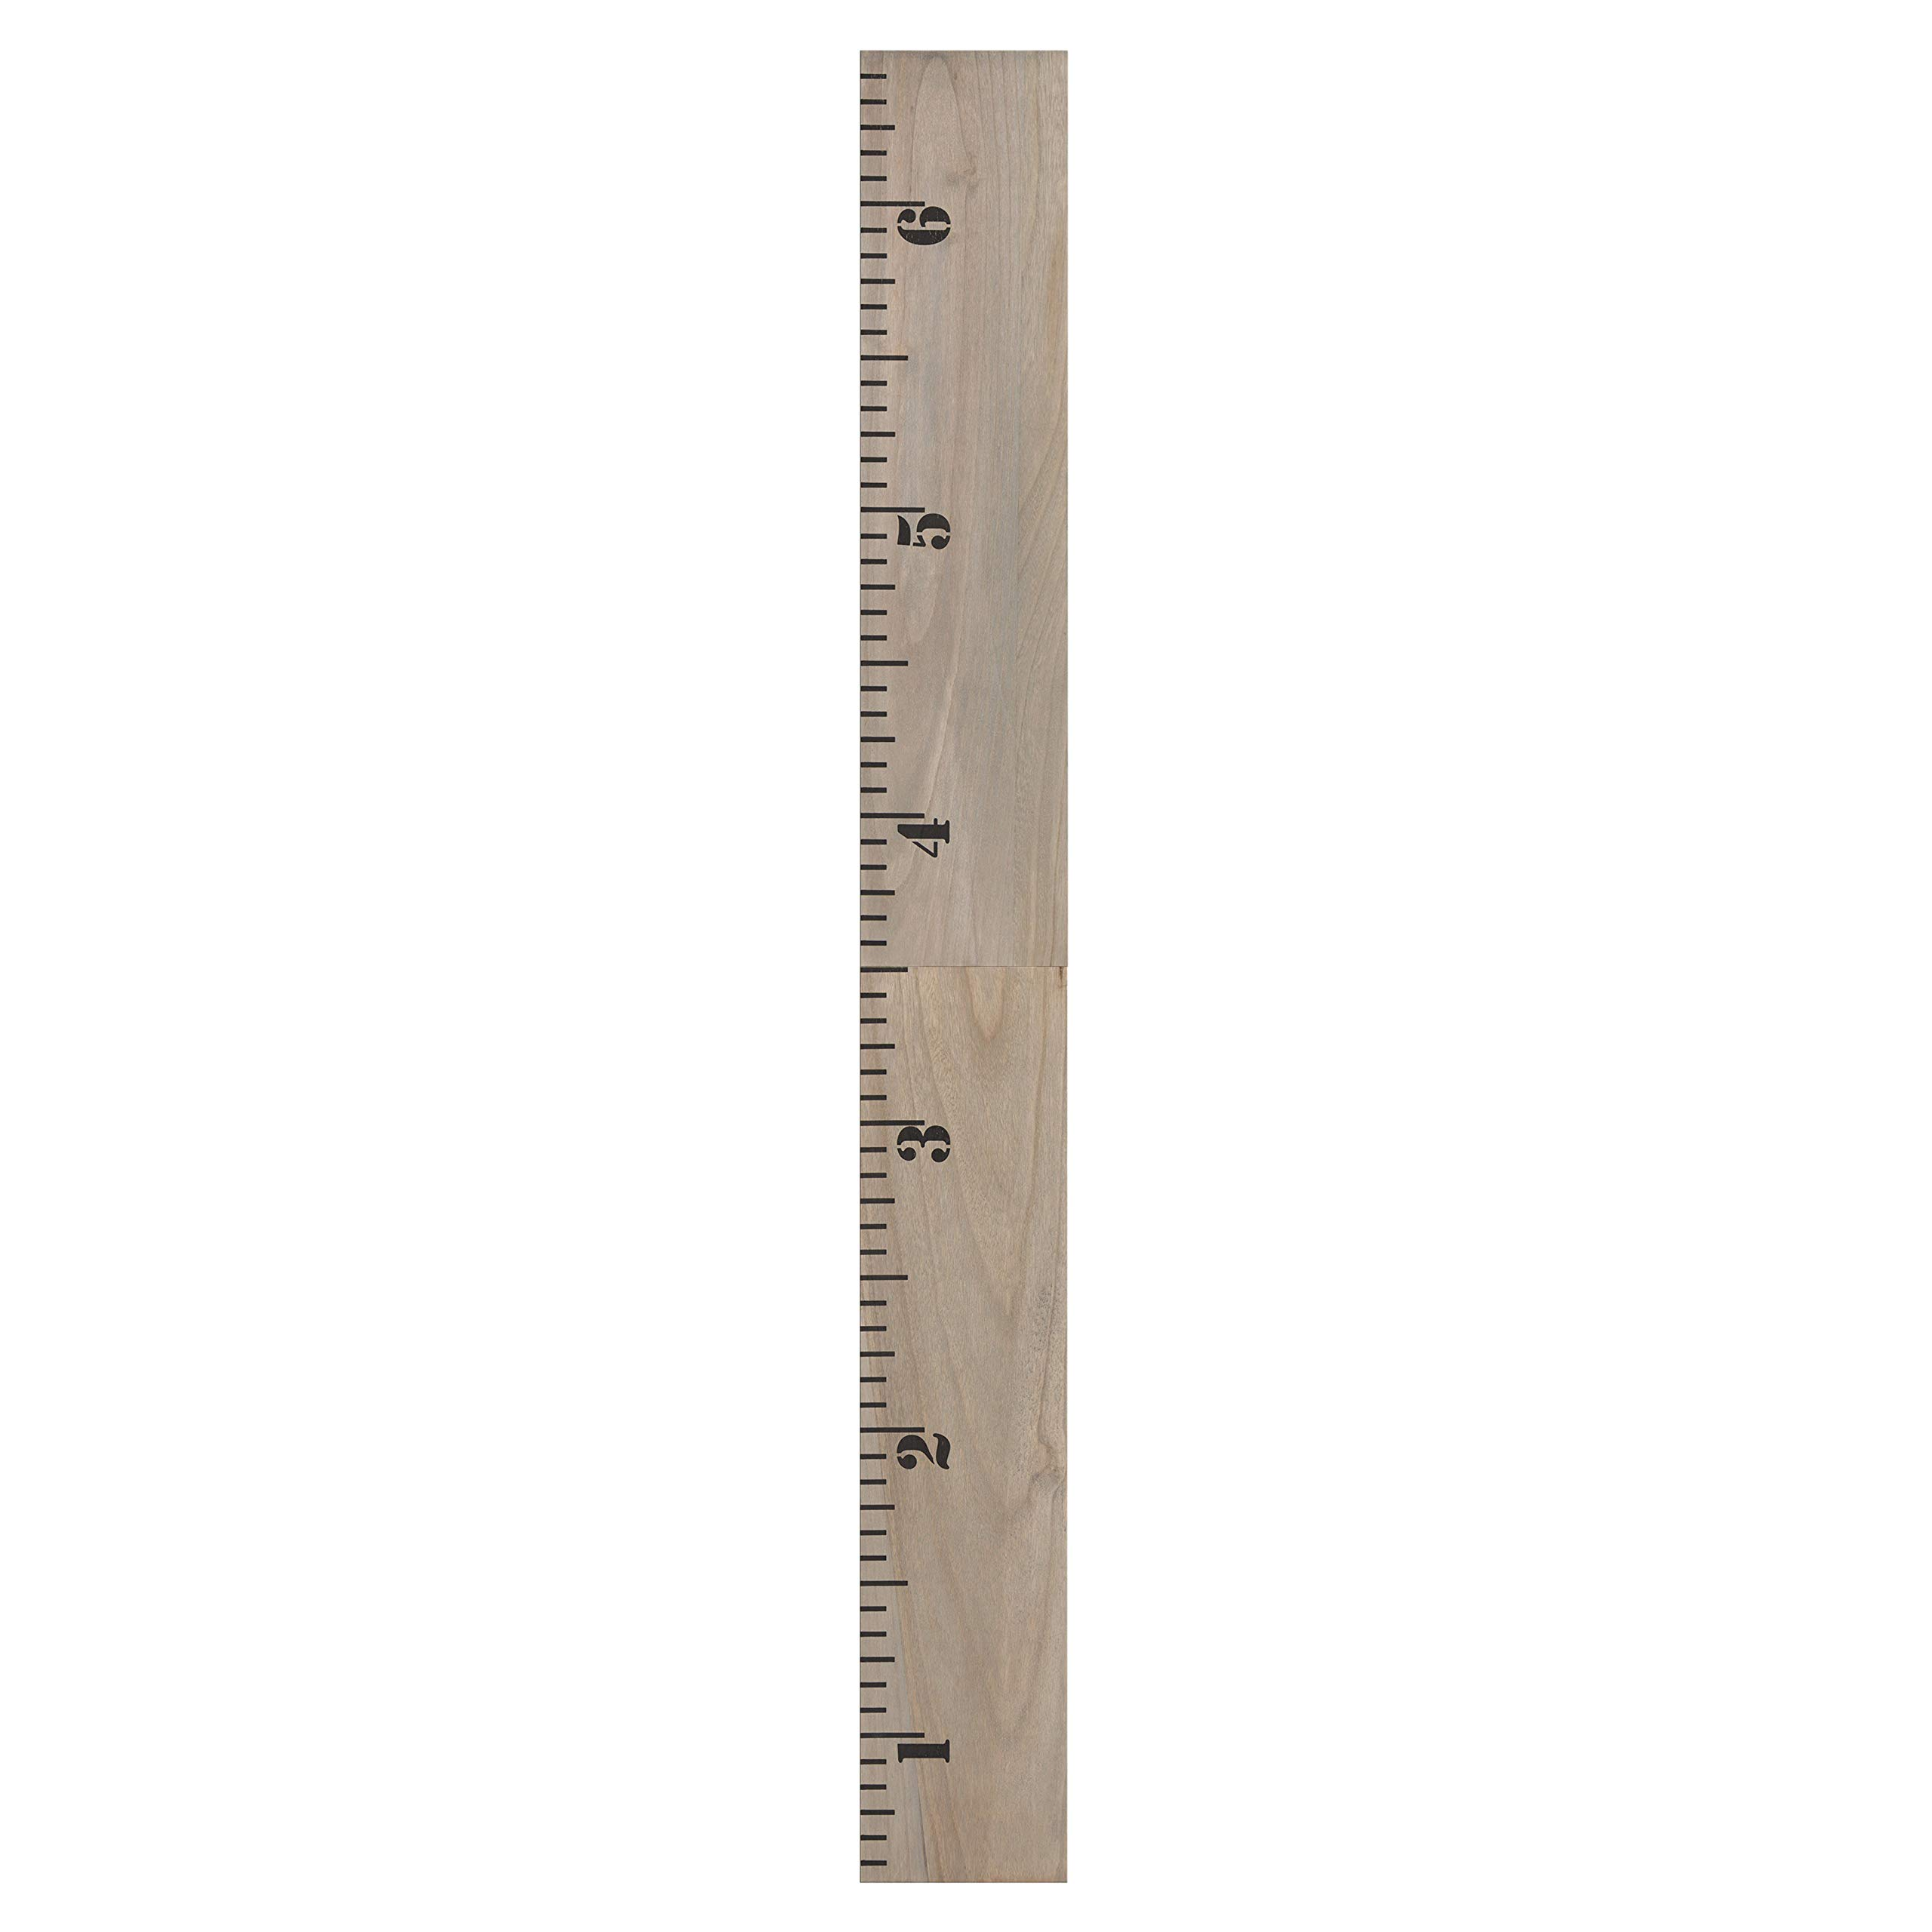 Kate and Laurel Growth Chart 6.5' Wood Wall Ruler, Gray by Kate and Laurel (Image #7)